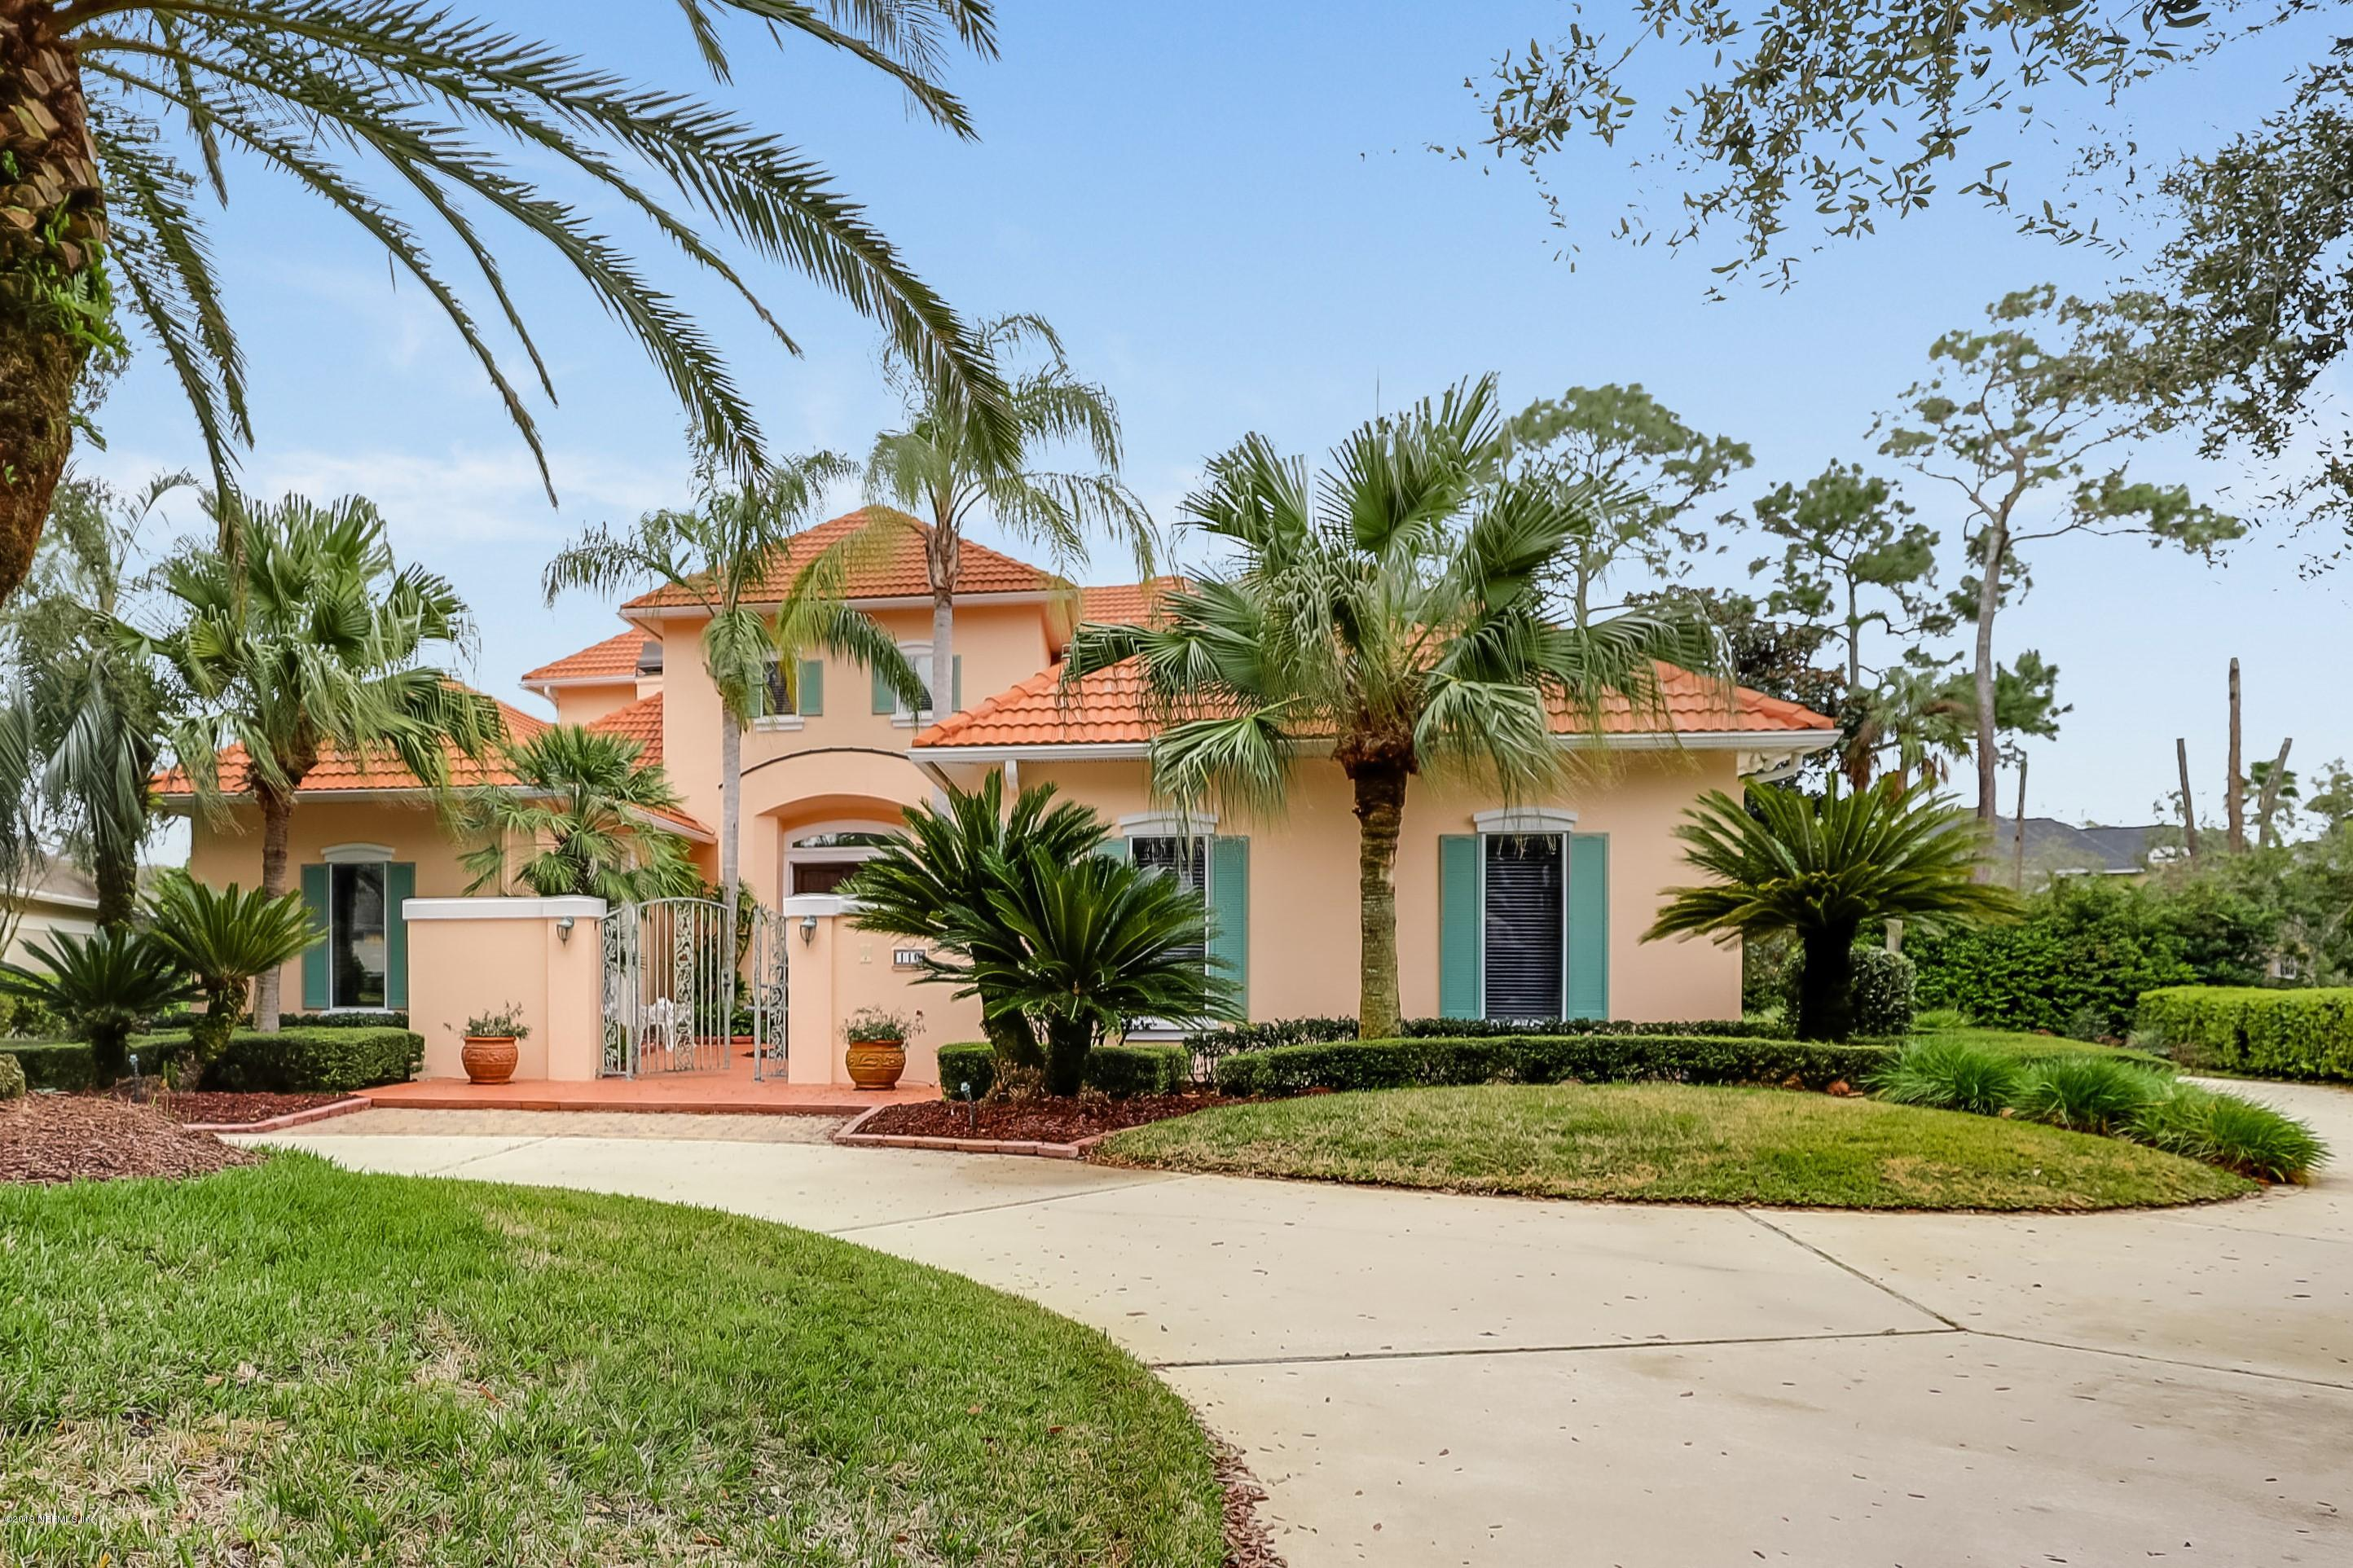 116 DEER HAVEN, PONTE VEDRA BEACH, FLORIDA 32082, 3 Bedrooms Bedrooms, ,3 BathroomsBathrooms,Residential - single family,For sale,DEER HAVEN,980022